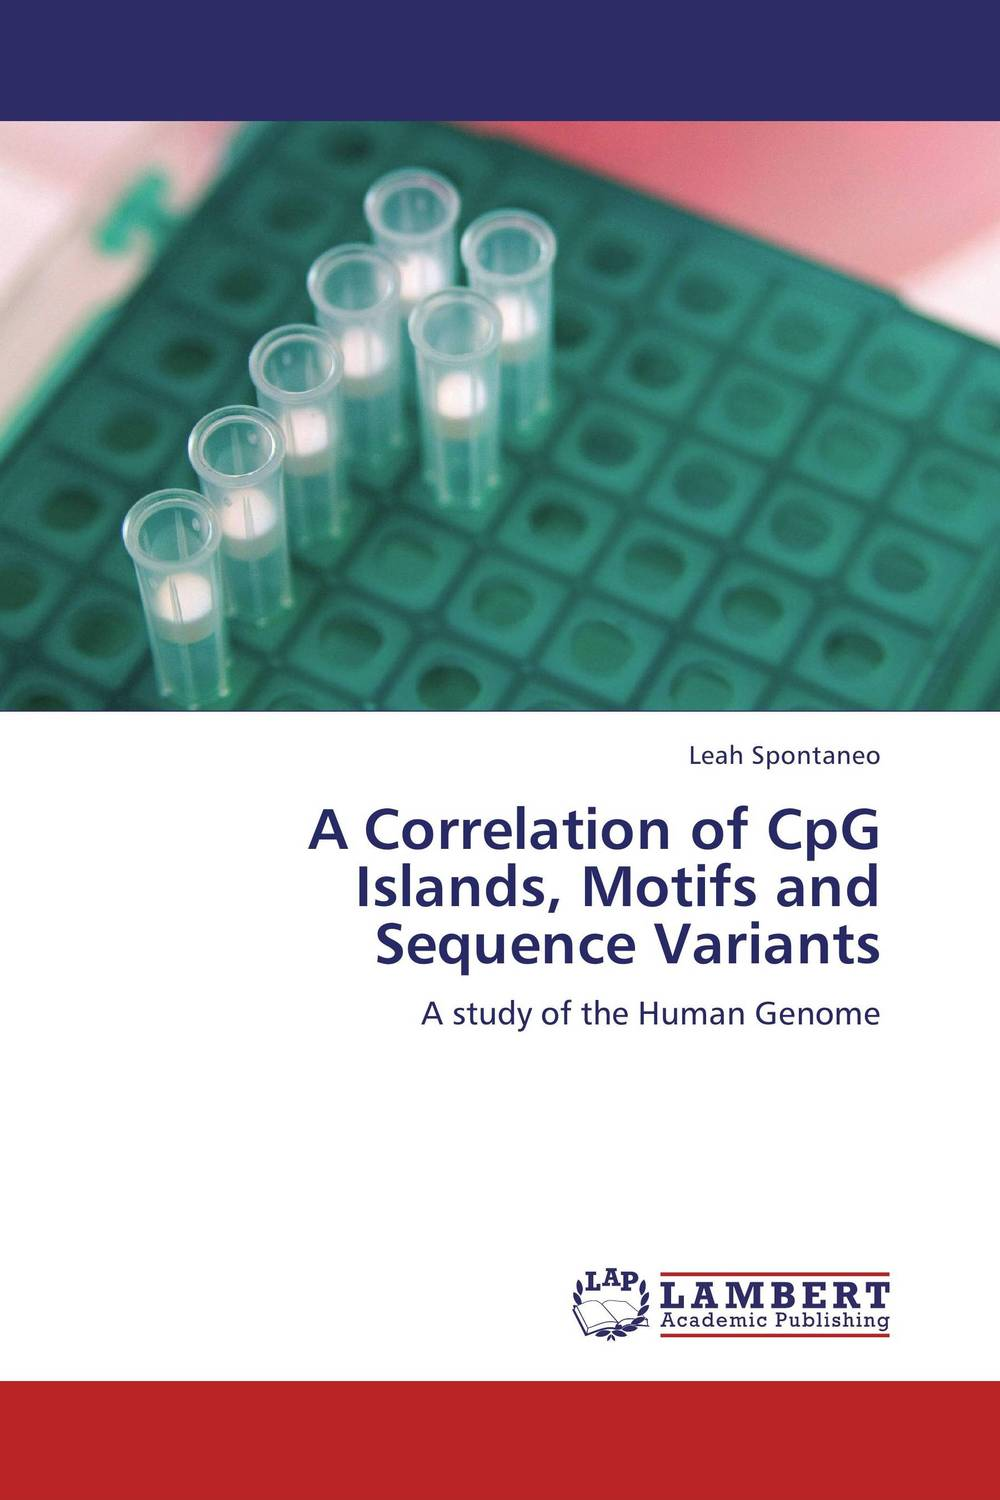 A Correlation of CpG Islands, Motifs and Sequence Variants islands in the stream